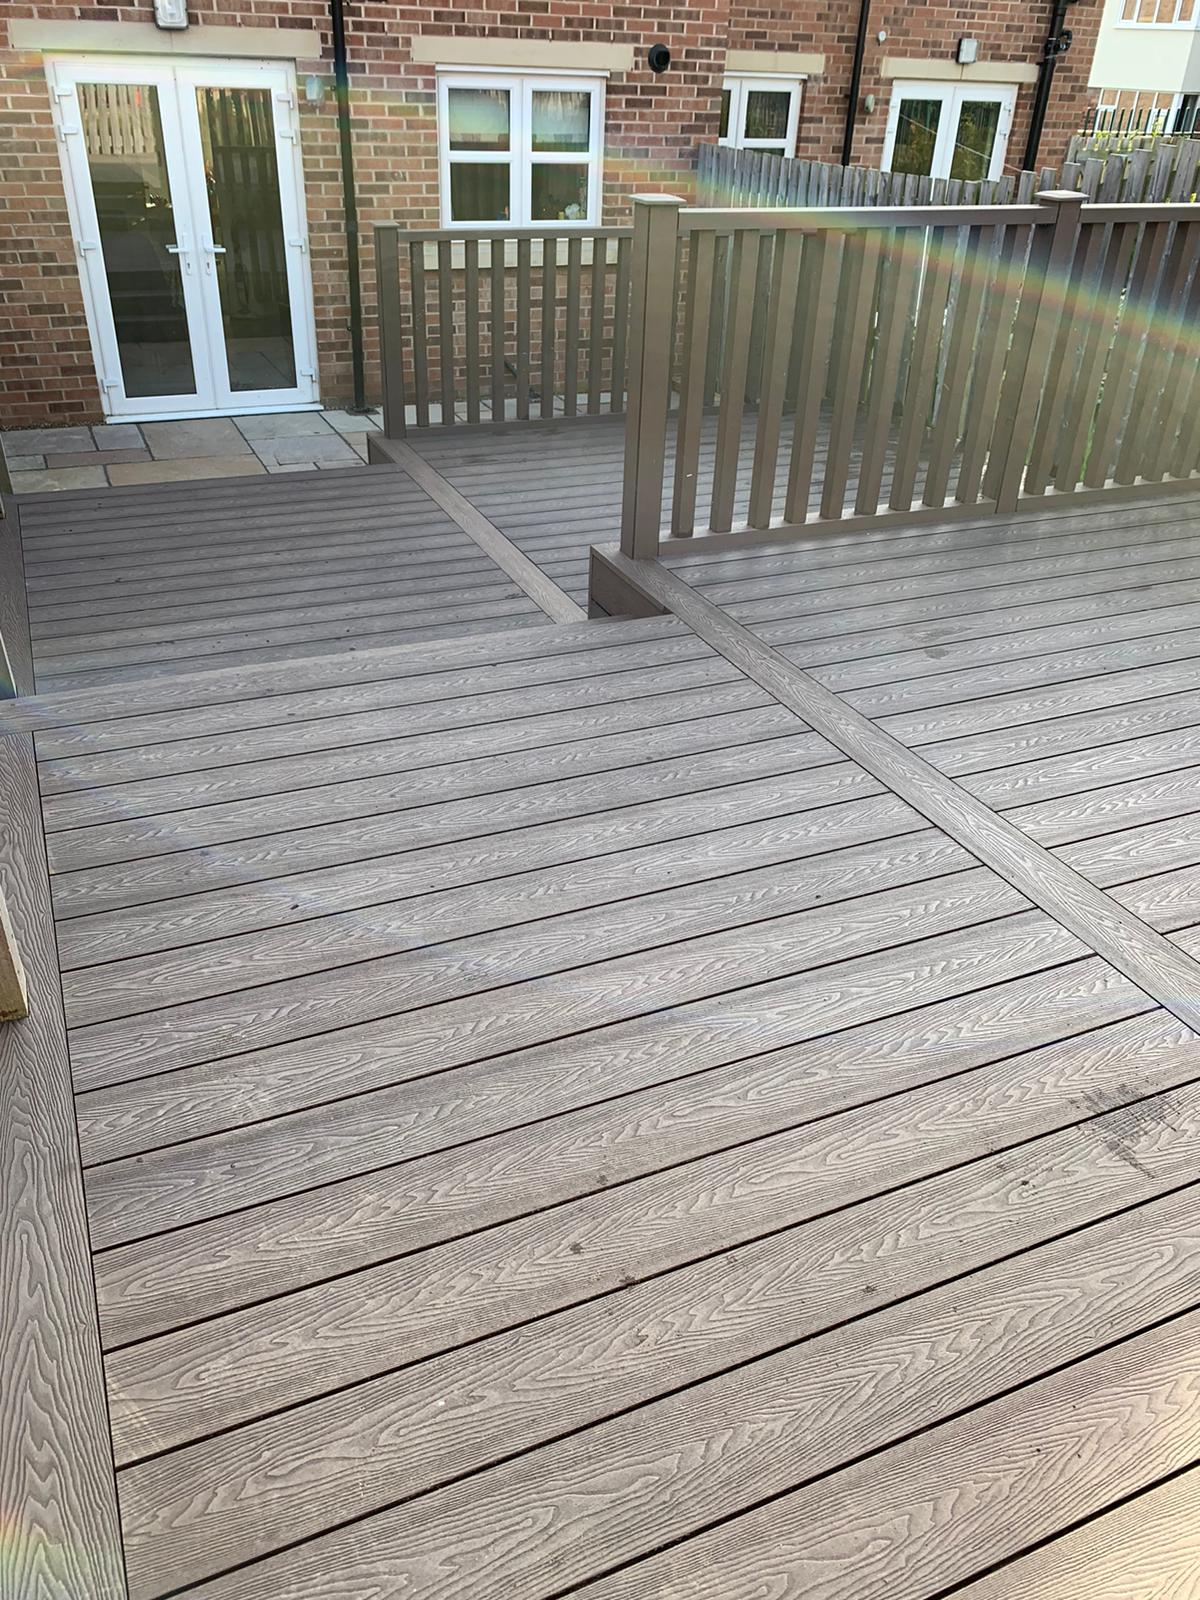 HERITAGE BROWN DEEP EMBOSSED COMPOSITE DECKING WITH HANDRAILS